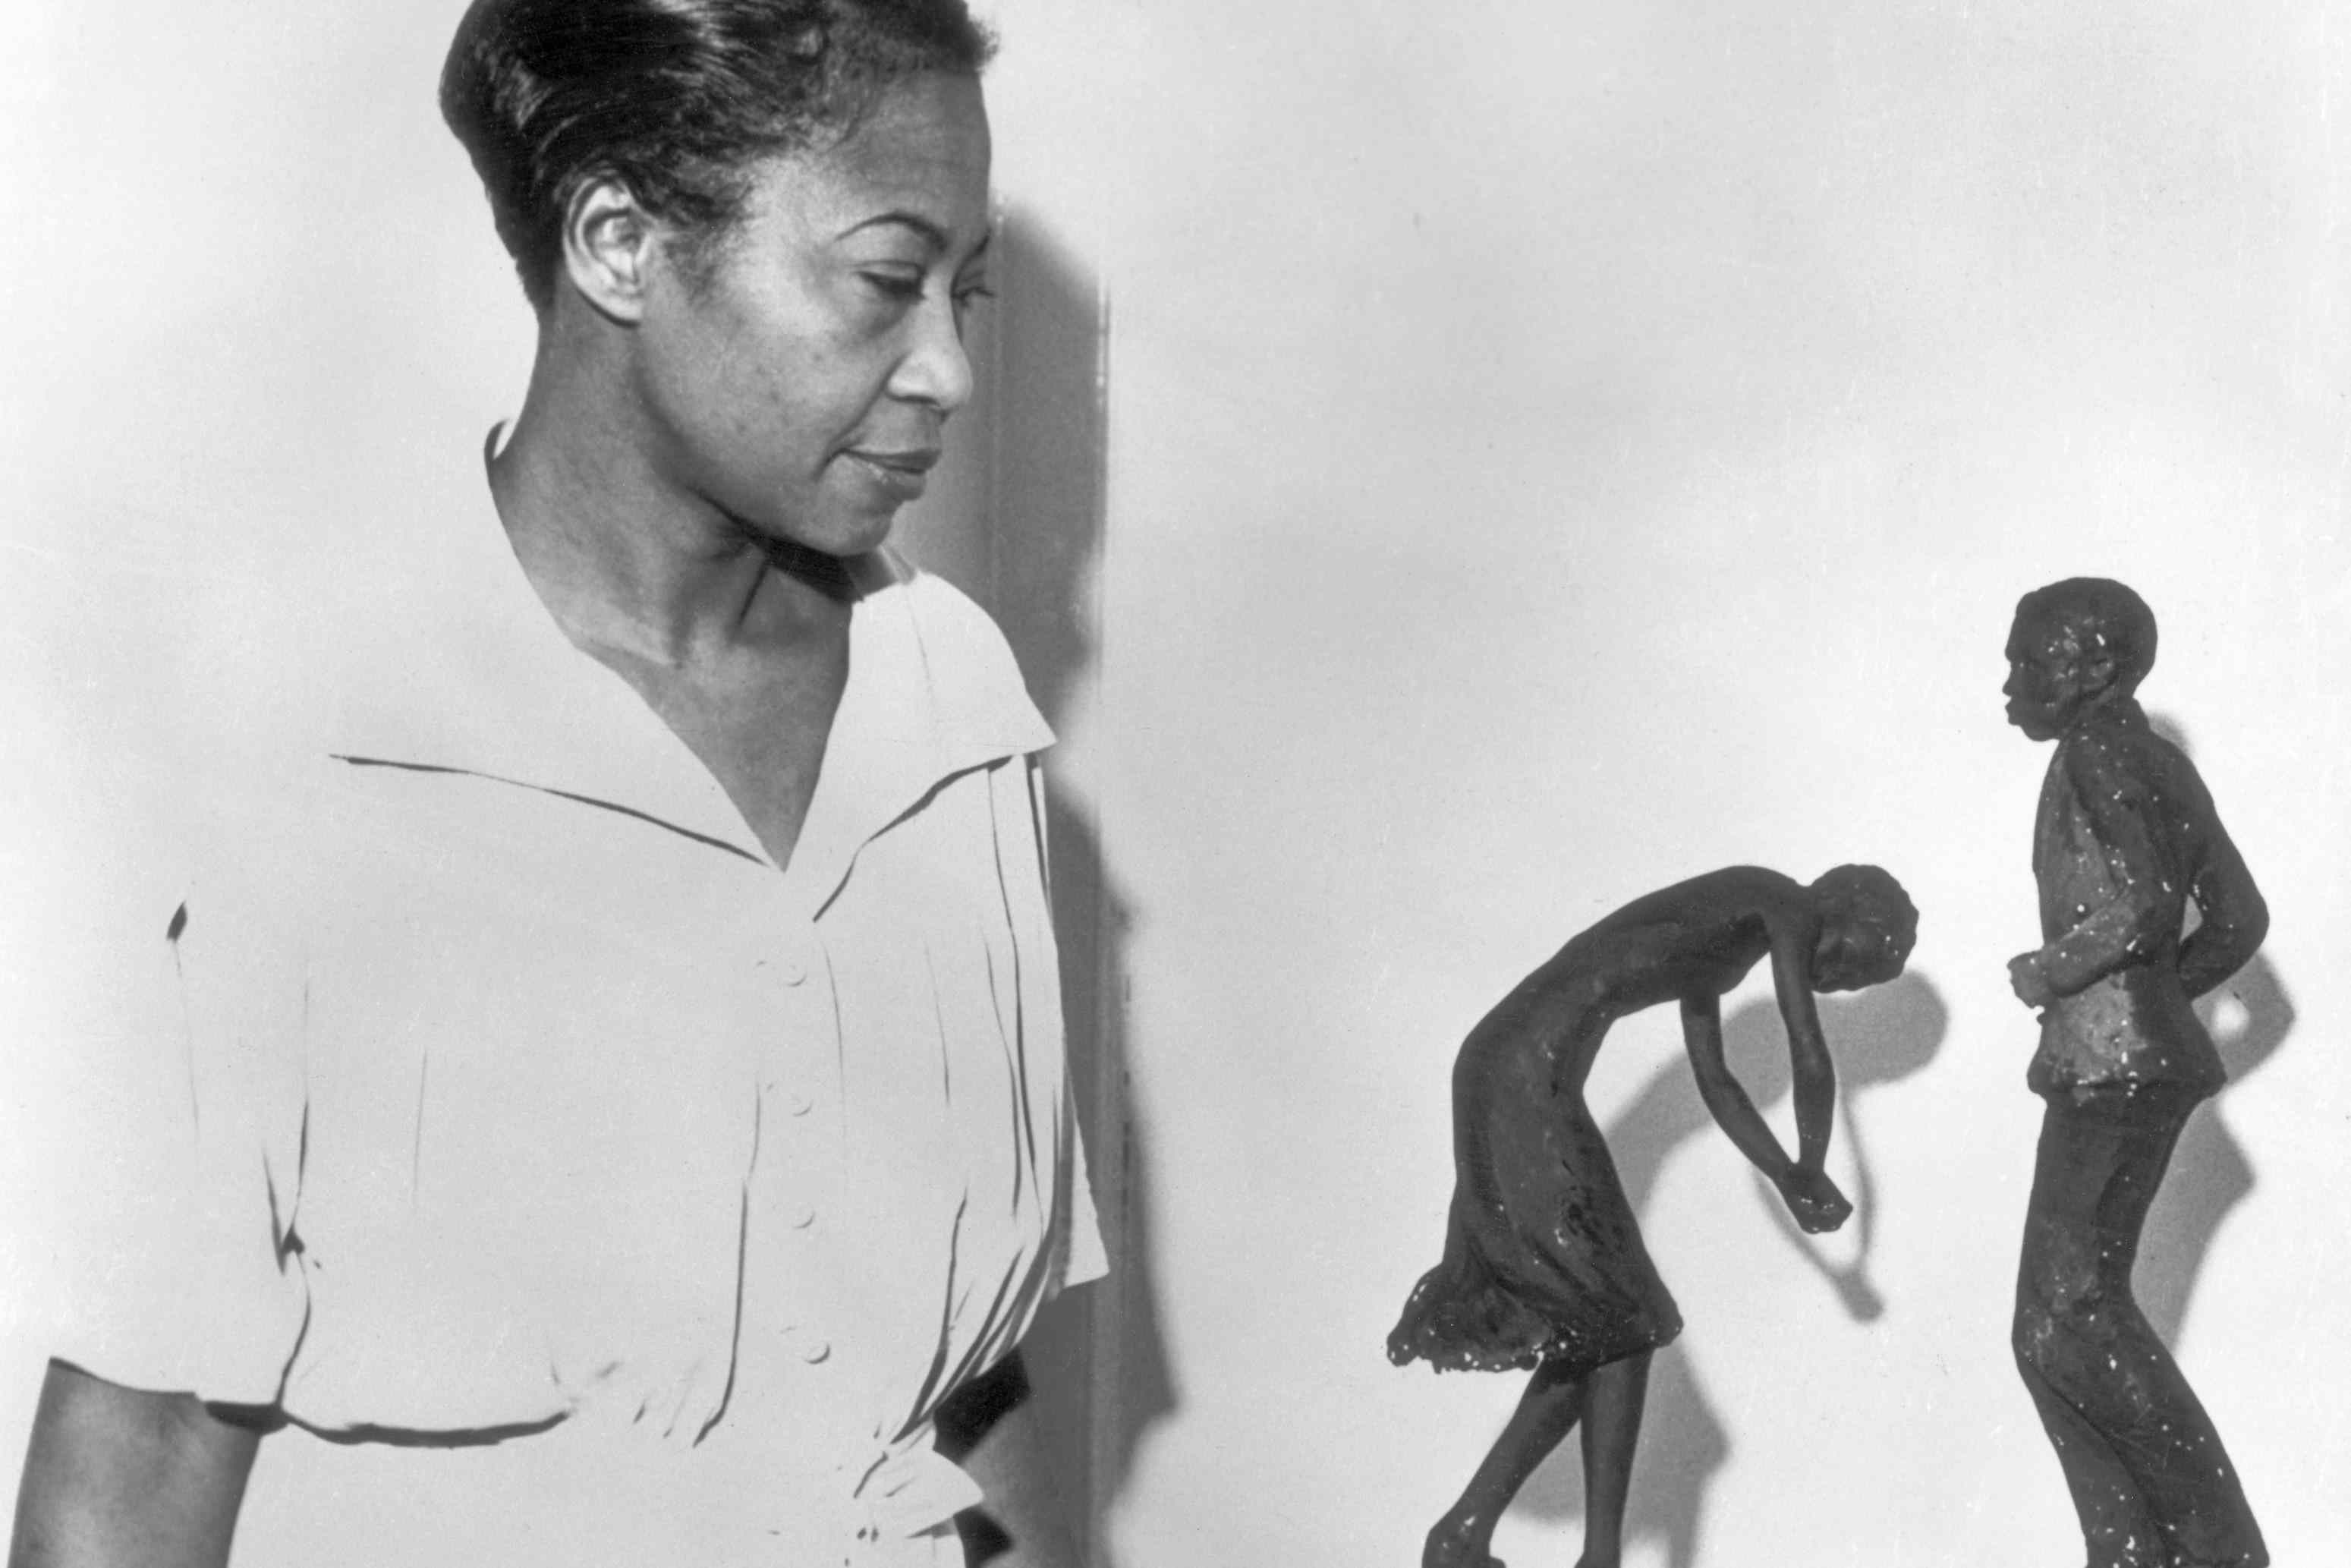 Sculptor Augusta Savage looking at two of her small sculptures